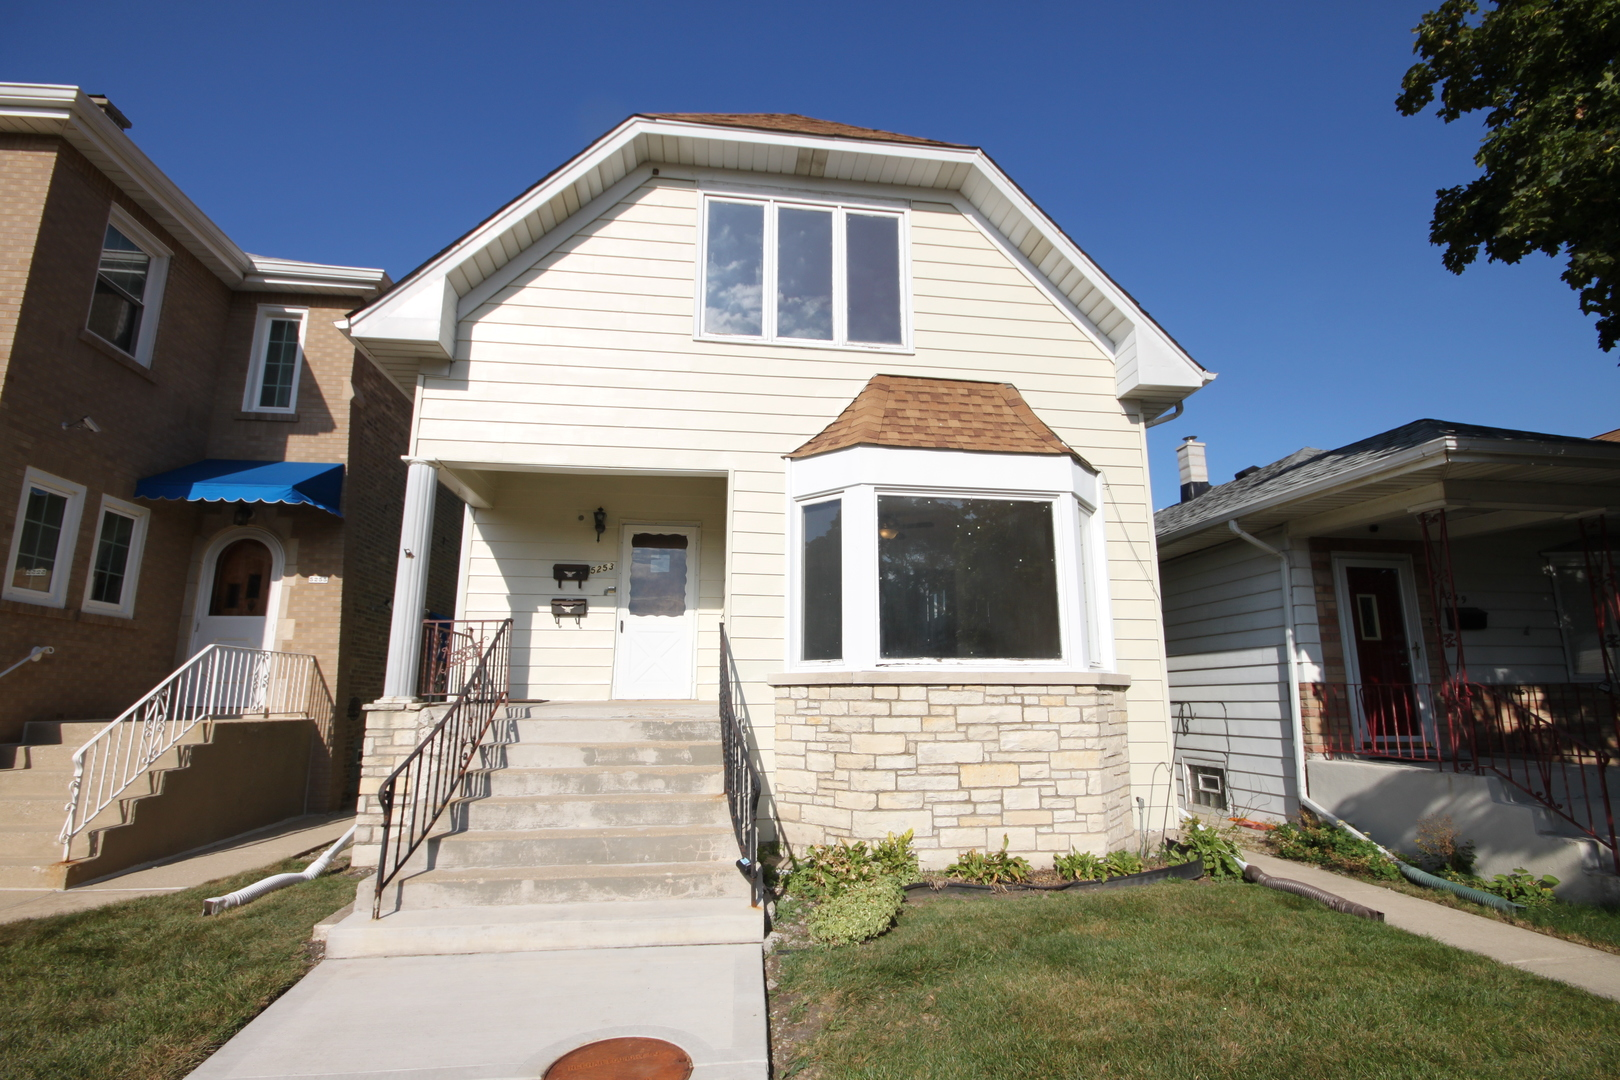 Spacious xtra wide 2 flat on 30 ft. wide lot on quiet tree lined street in Jefferson Park. Recently